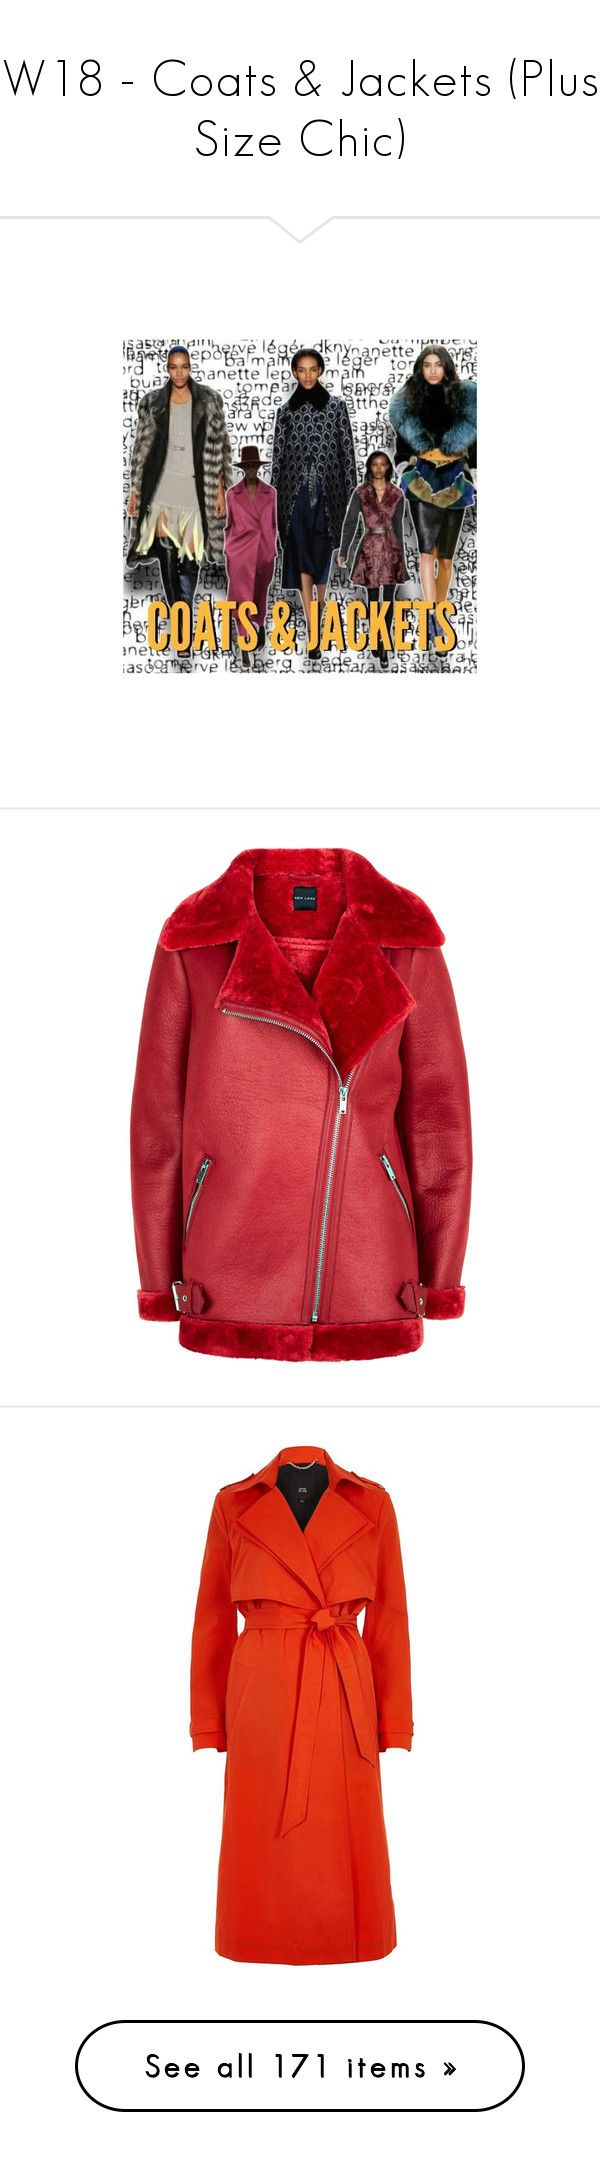 """""""W18 - Coats & Jackets (Plus Size Chic)"""" by foolsuk ❤ liked on Polyvore featuring shoes, outerwear, coats, coats / jackets, red, women, red coat, trench coats, red trench coat and belted trench coat"""